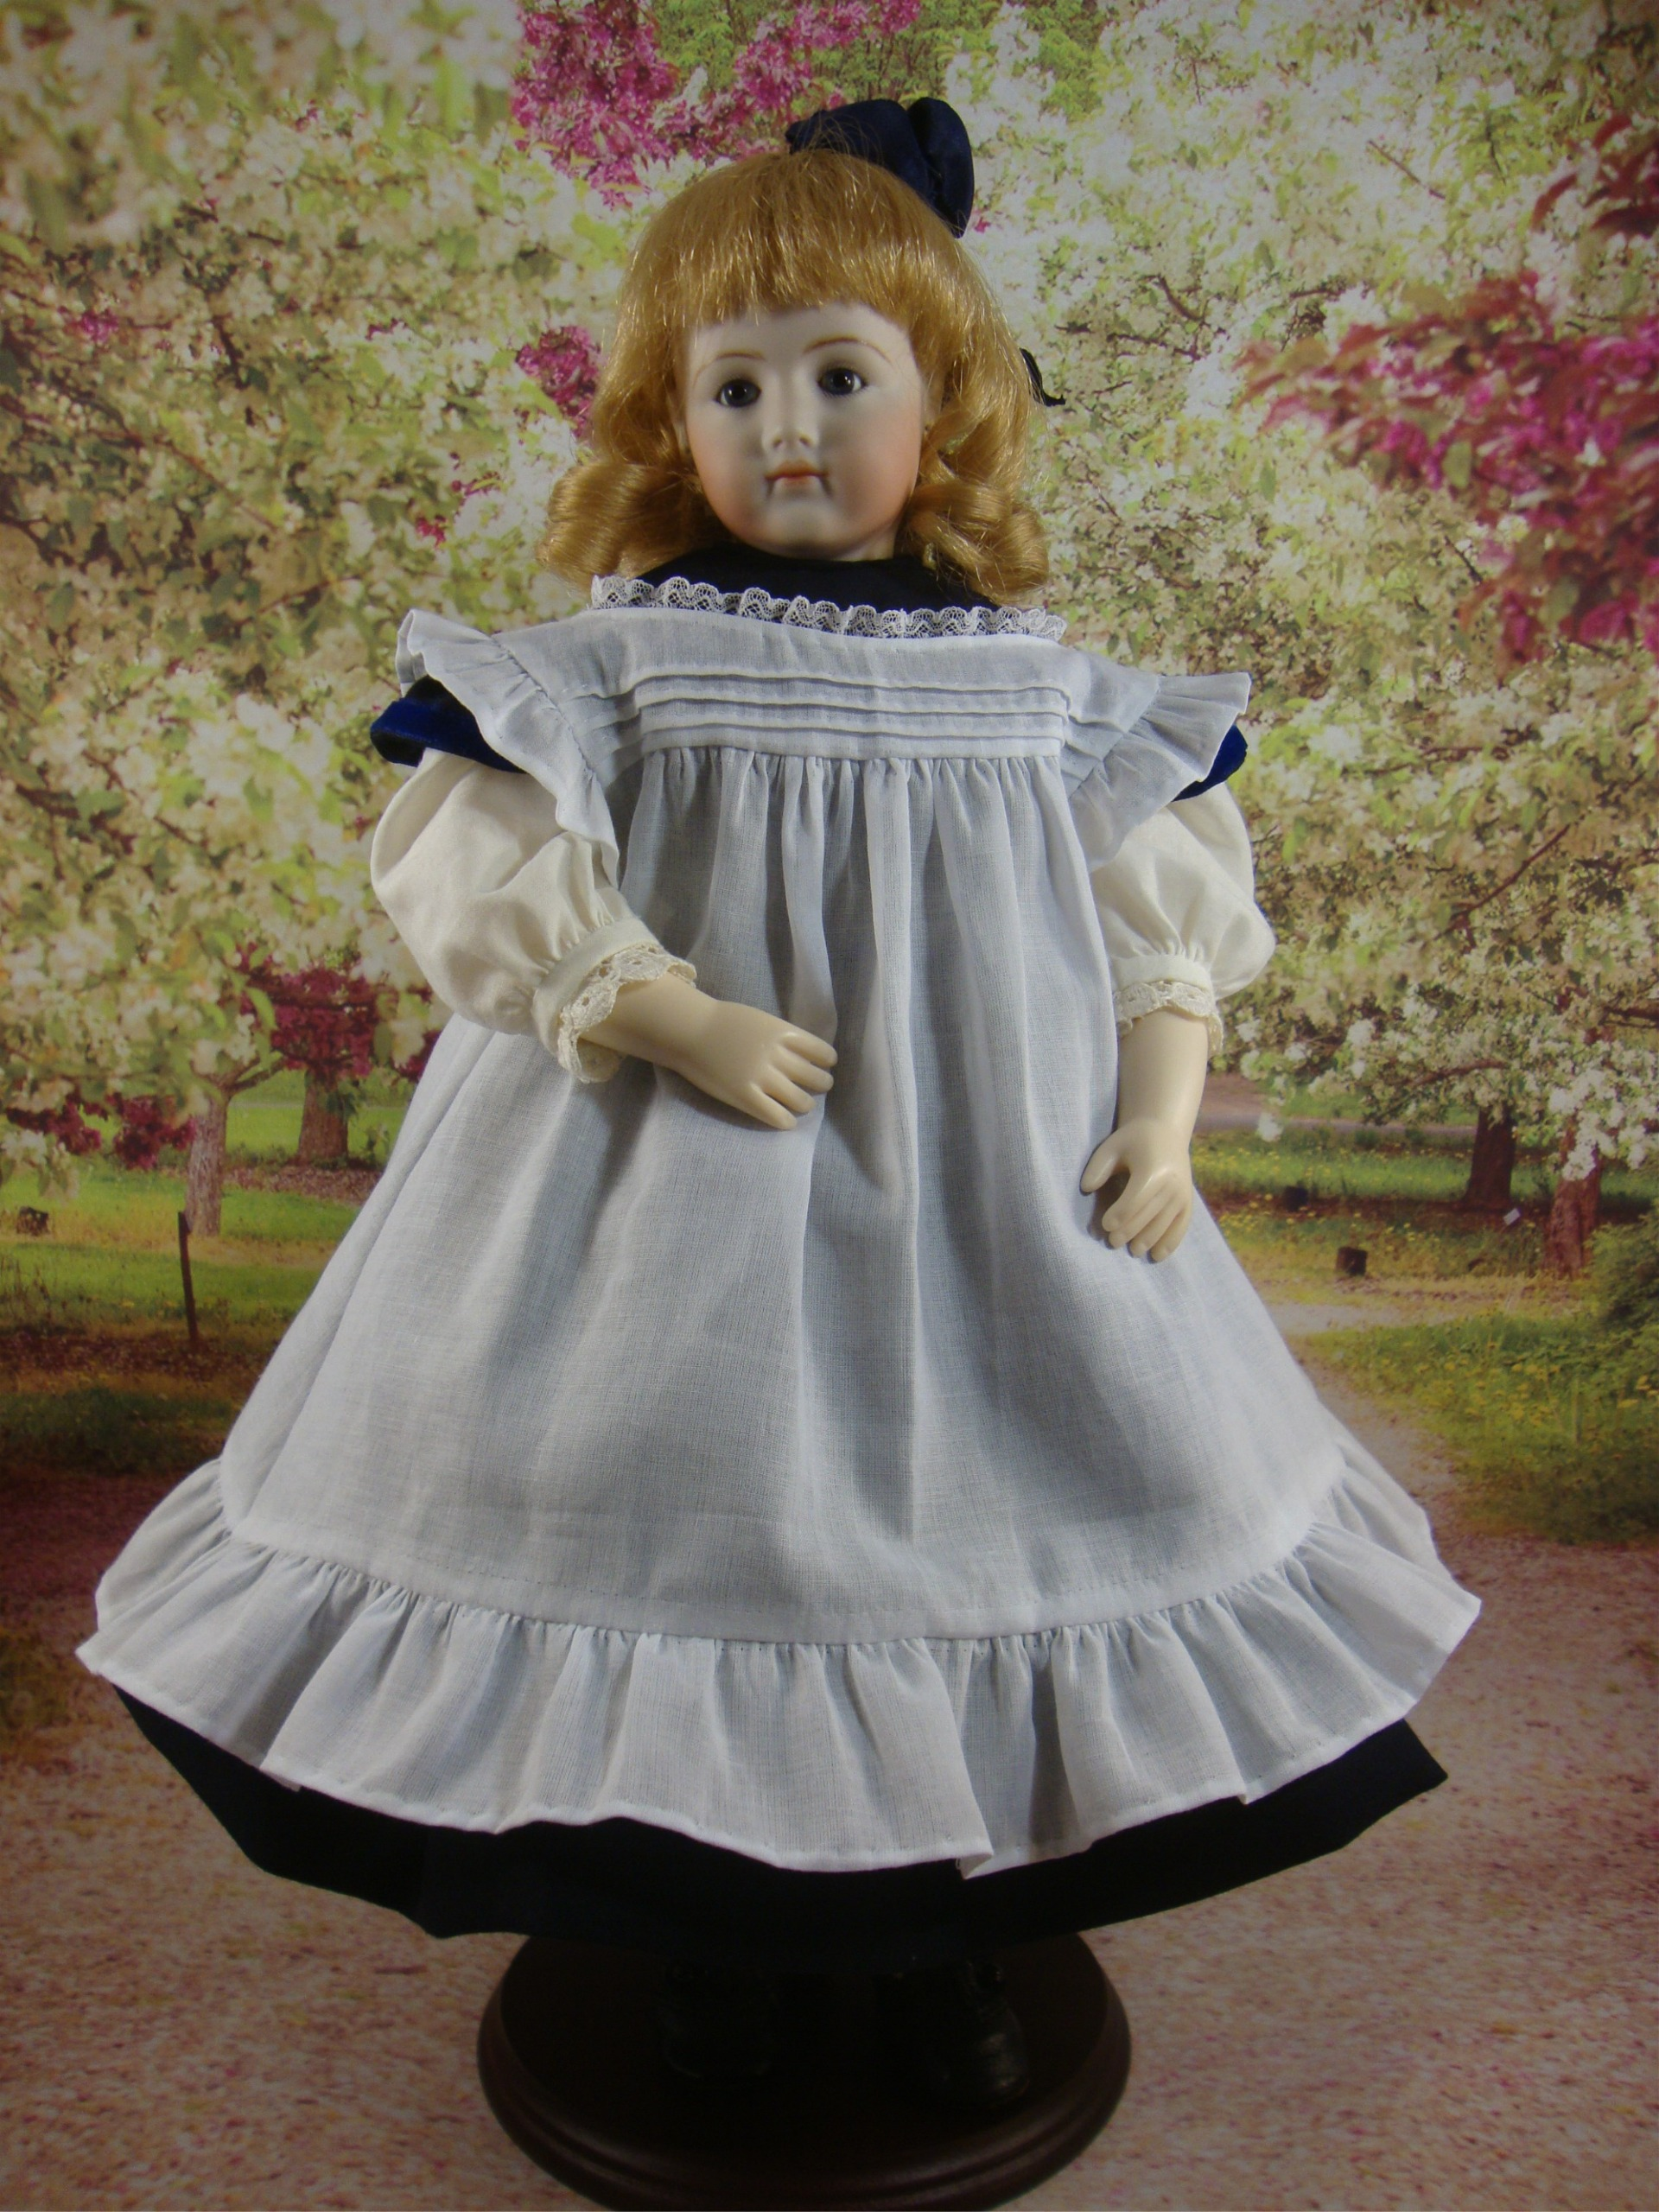 "School Dress and Apron for 12.5"" Jointed Body"